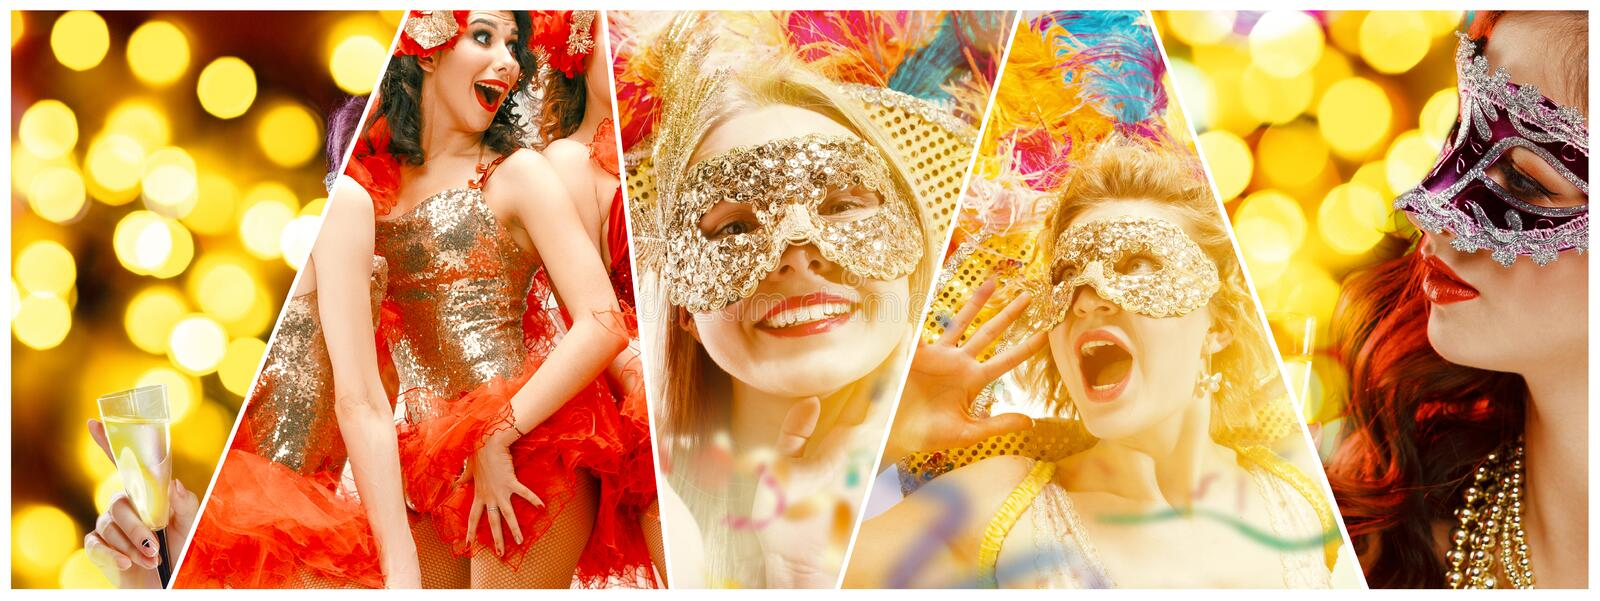 Beautiful young women in carnival mask. Beautiful surprised women in carnival mask. Models wearing masquerade masks at party on background with magic glow royalty free stock photo